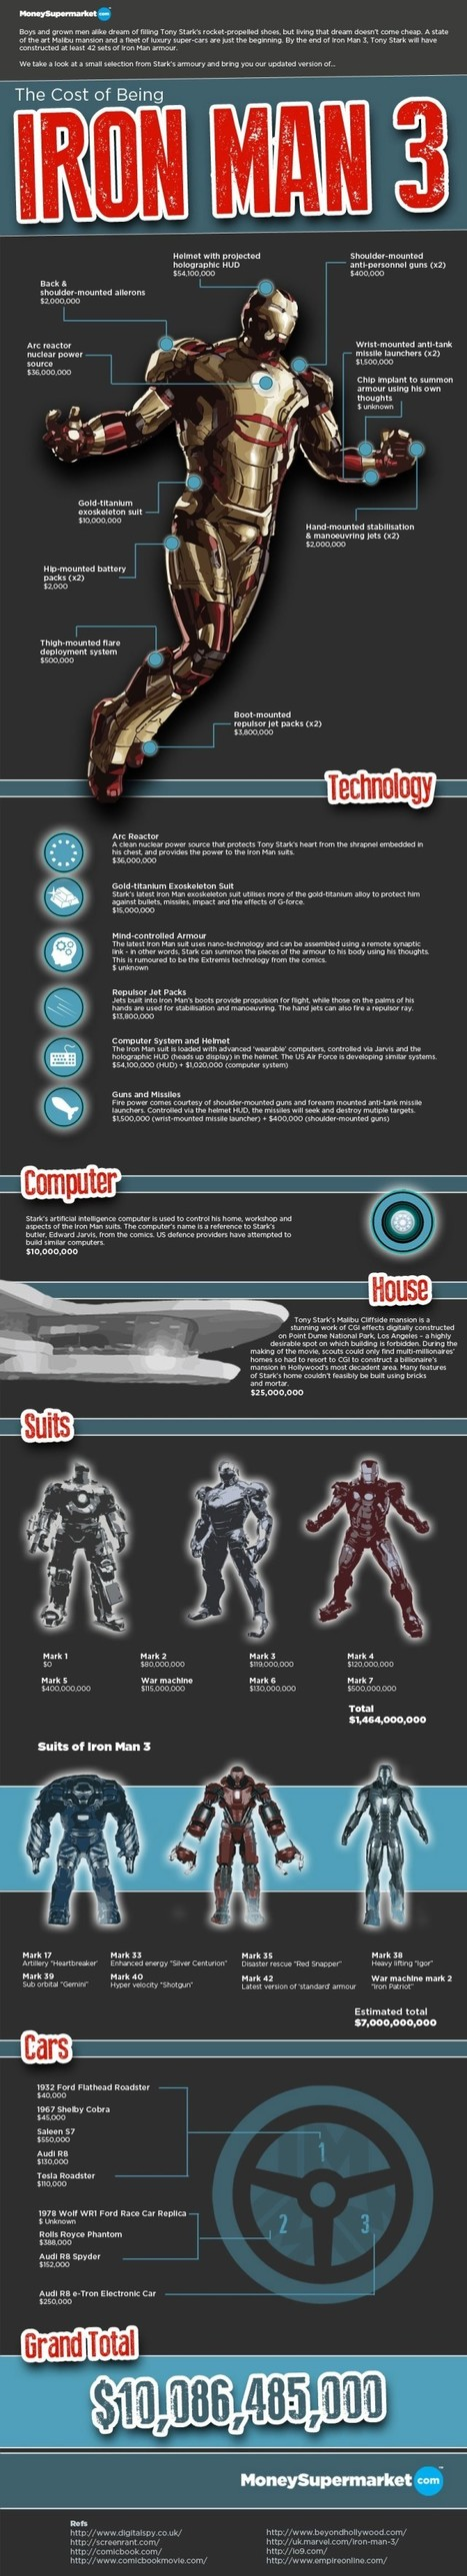 Collection of Iron Man Infographics | BestInfographics.co | The Best Infographics | Scoop.it